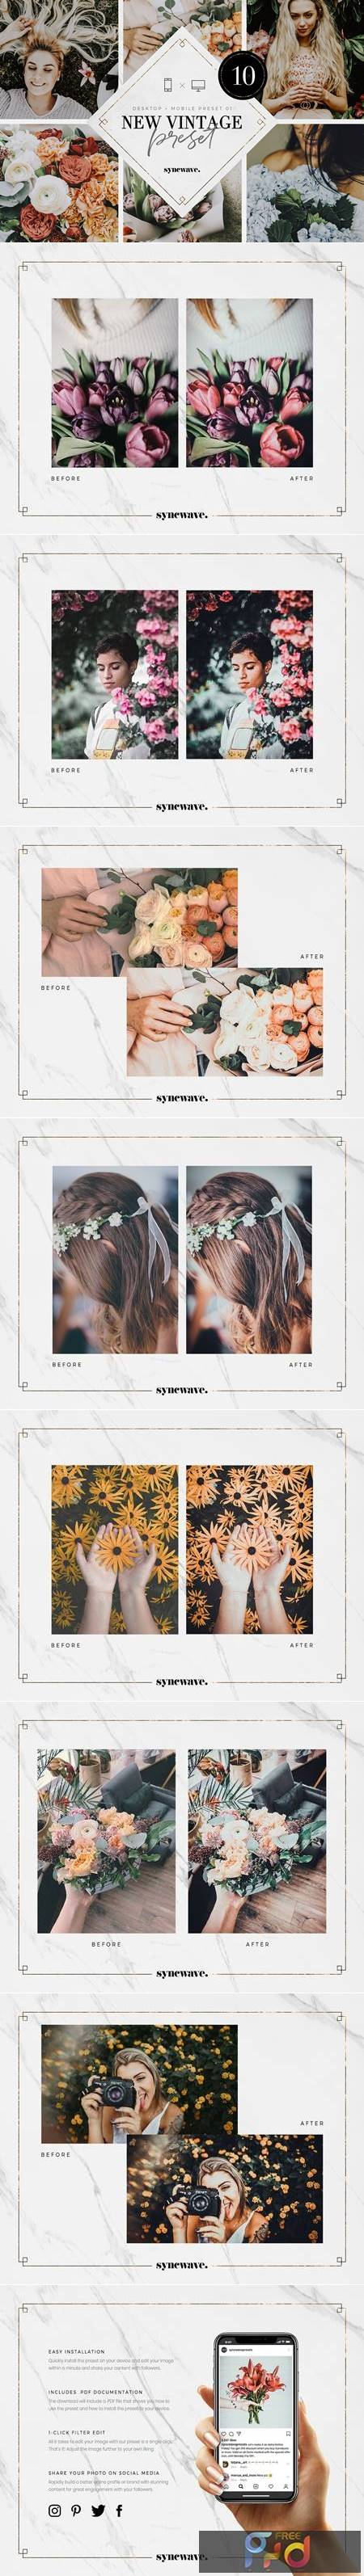 New Vintage Lightroom Preset Bundle 5251230 1